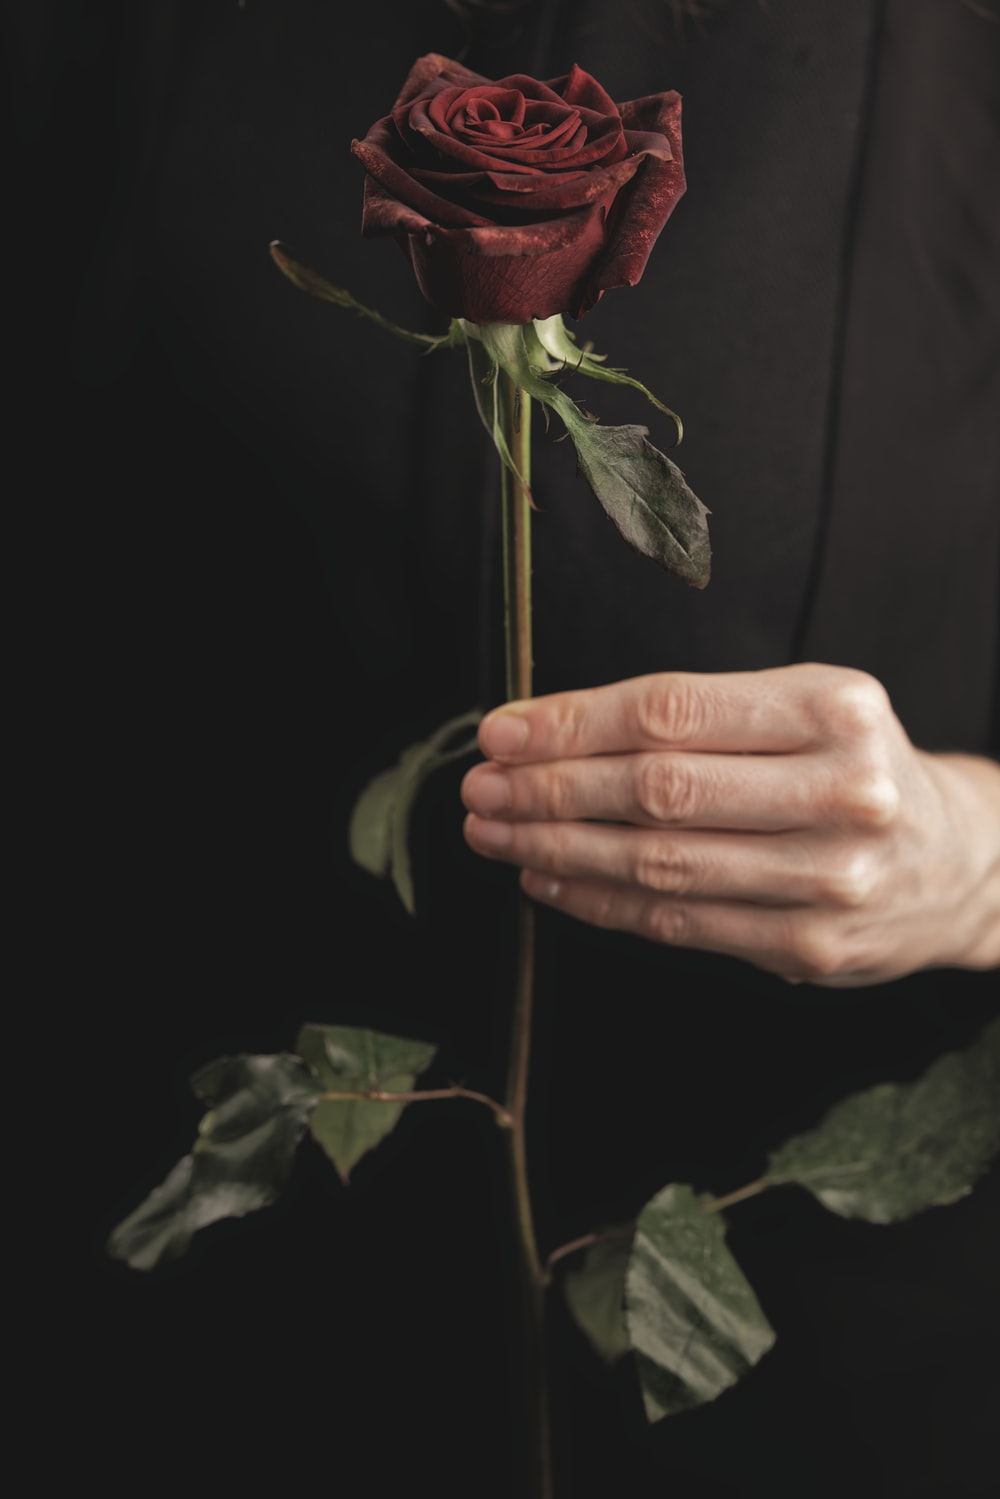 person holding red rose in dark room